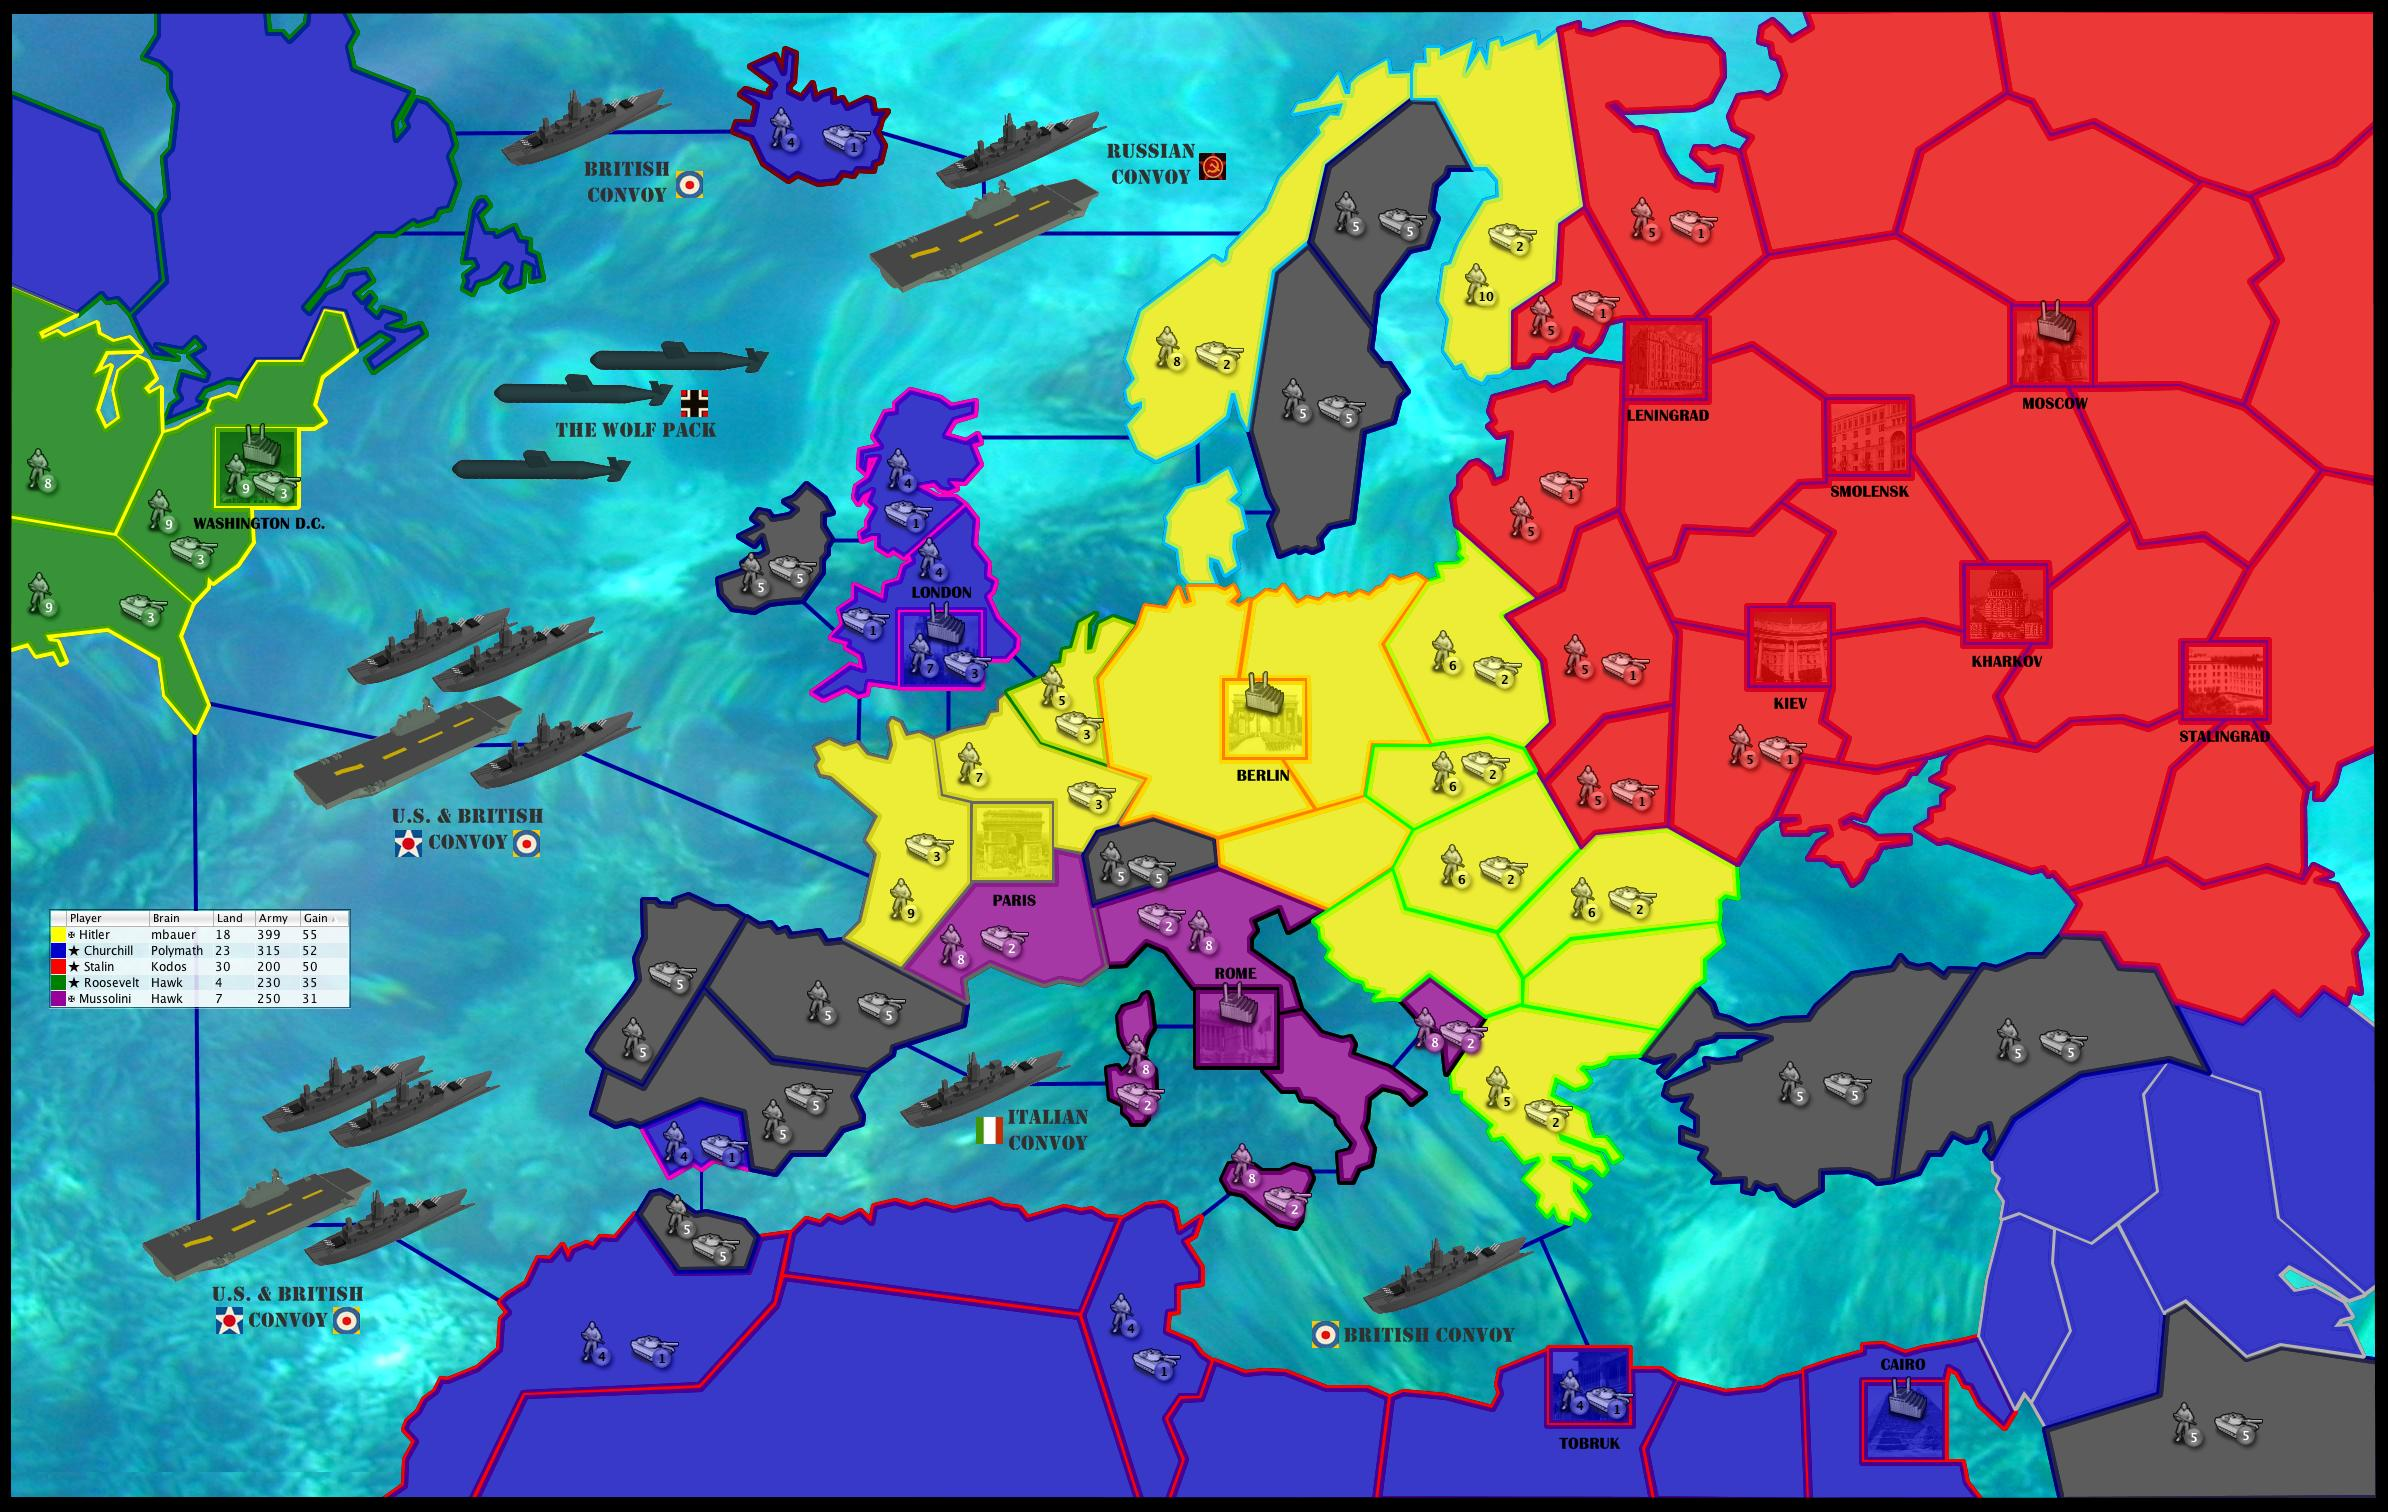 WORLD WAR II - EUROPE 1942 Map